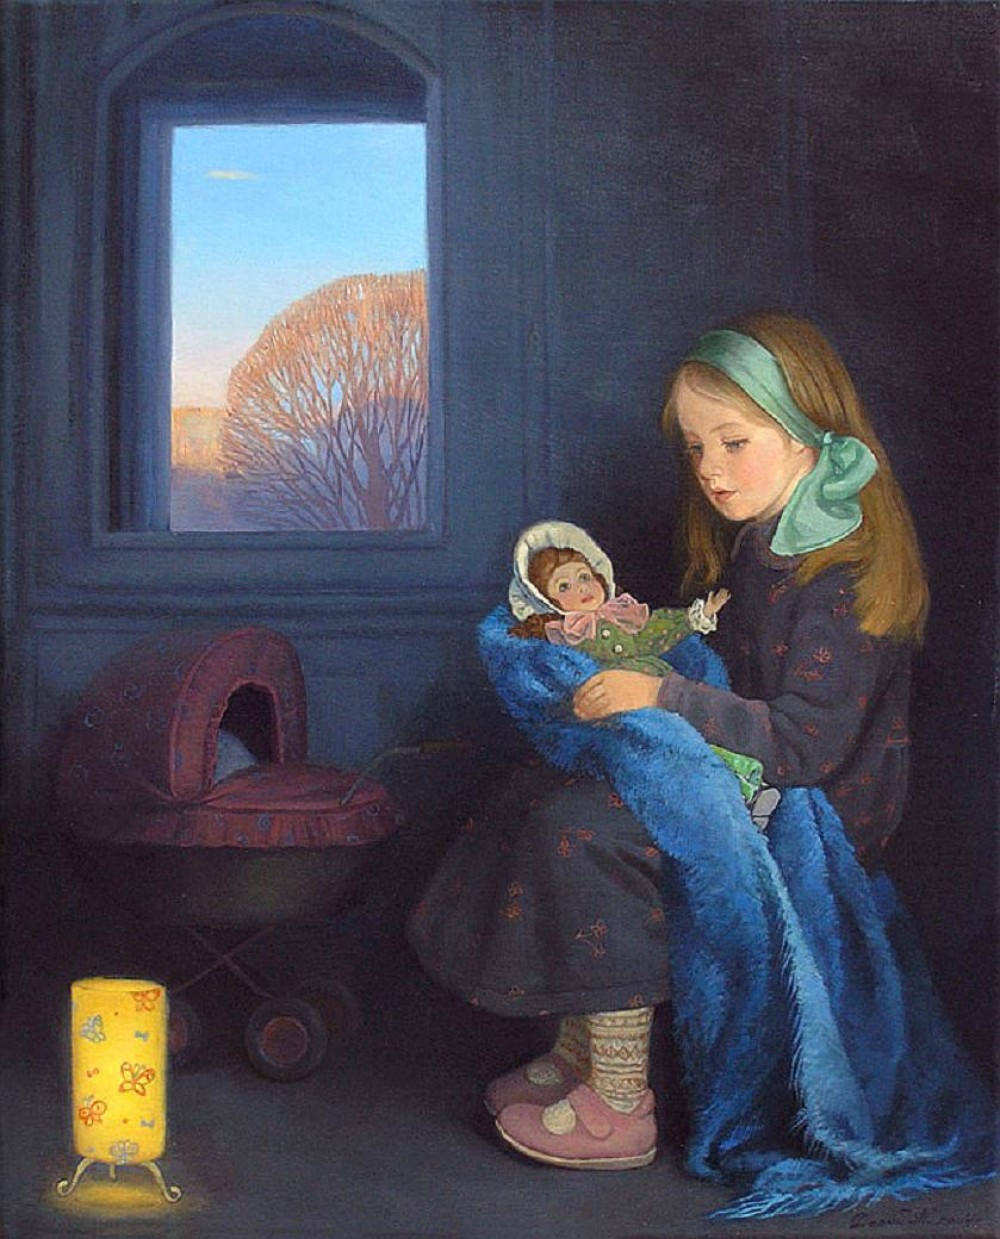 Tatiana Dery. An Evening Lullaby. 2004